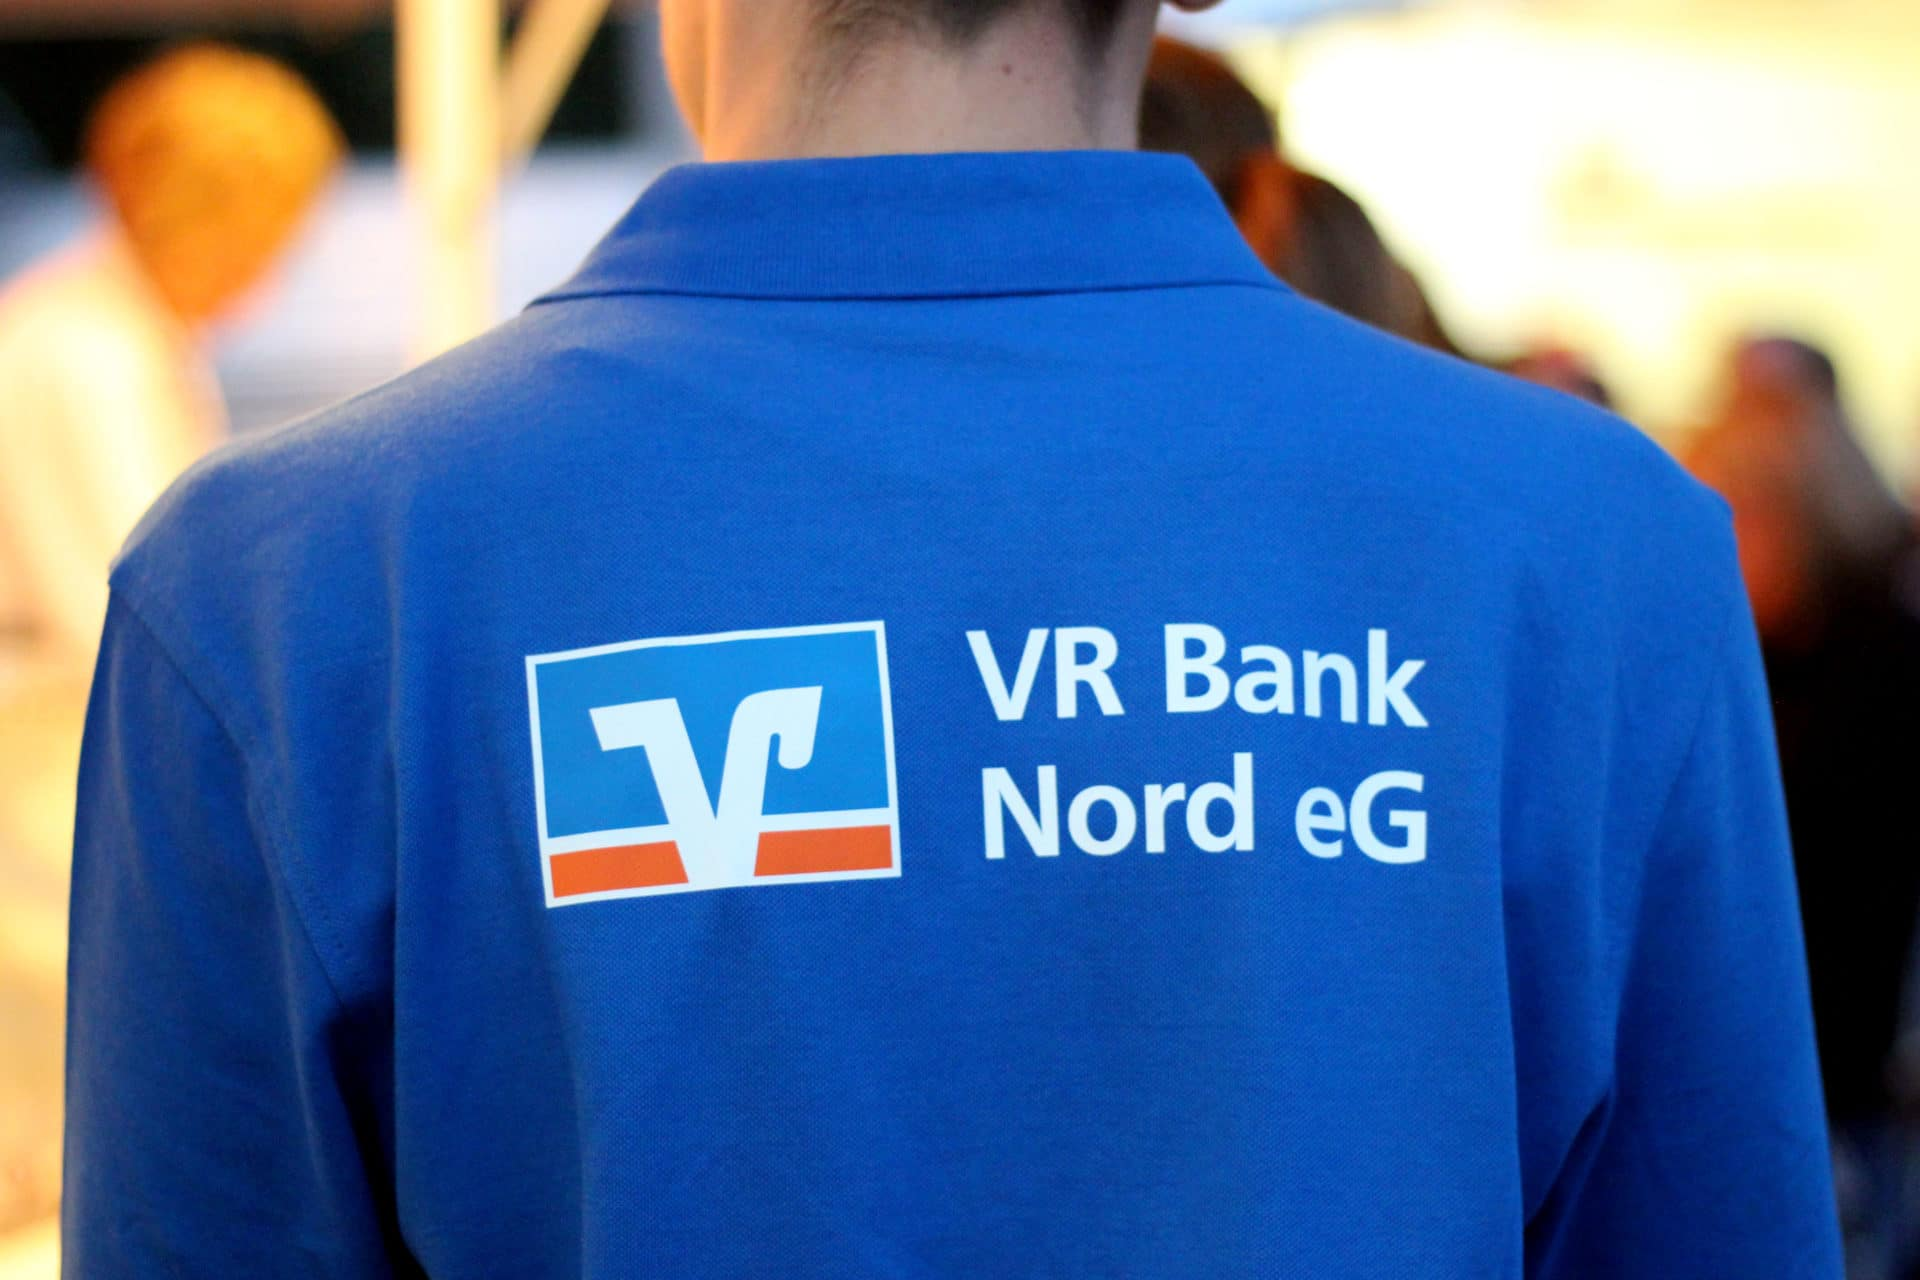 VR Bank Nord